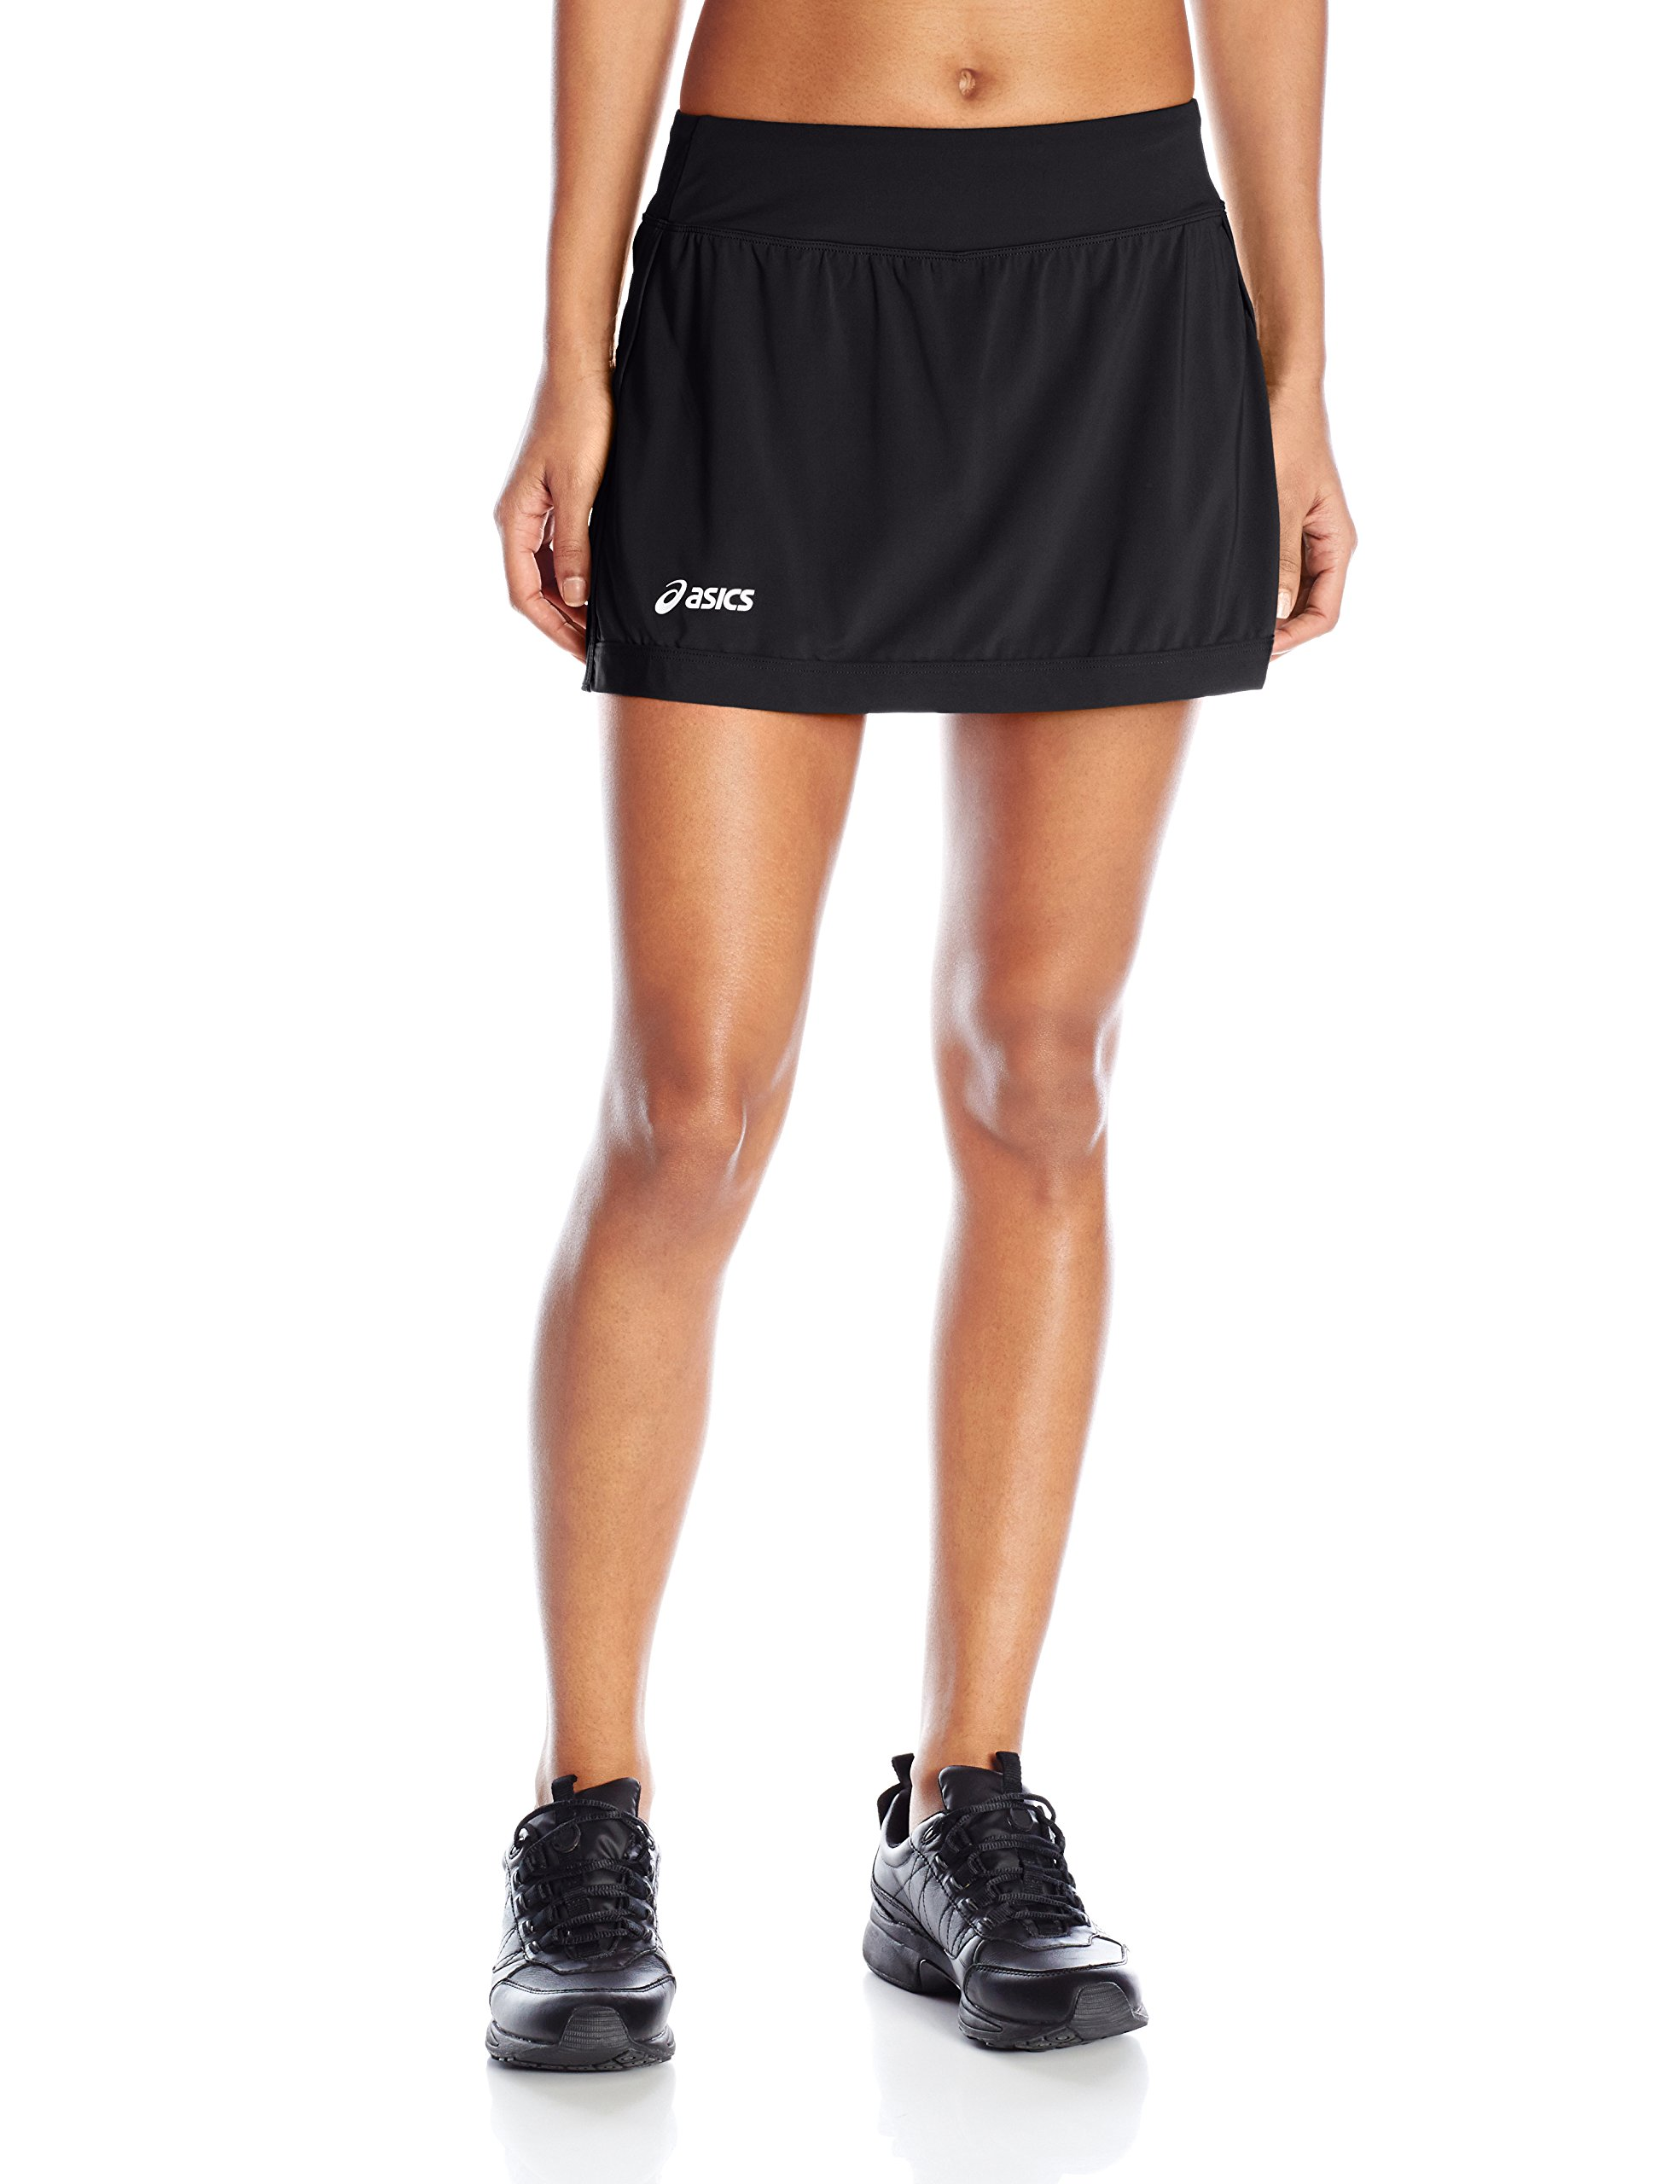 ASICS Women's The Attacker Sarong Shorts, Black, Large